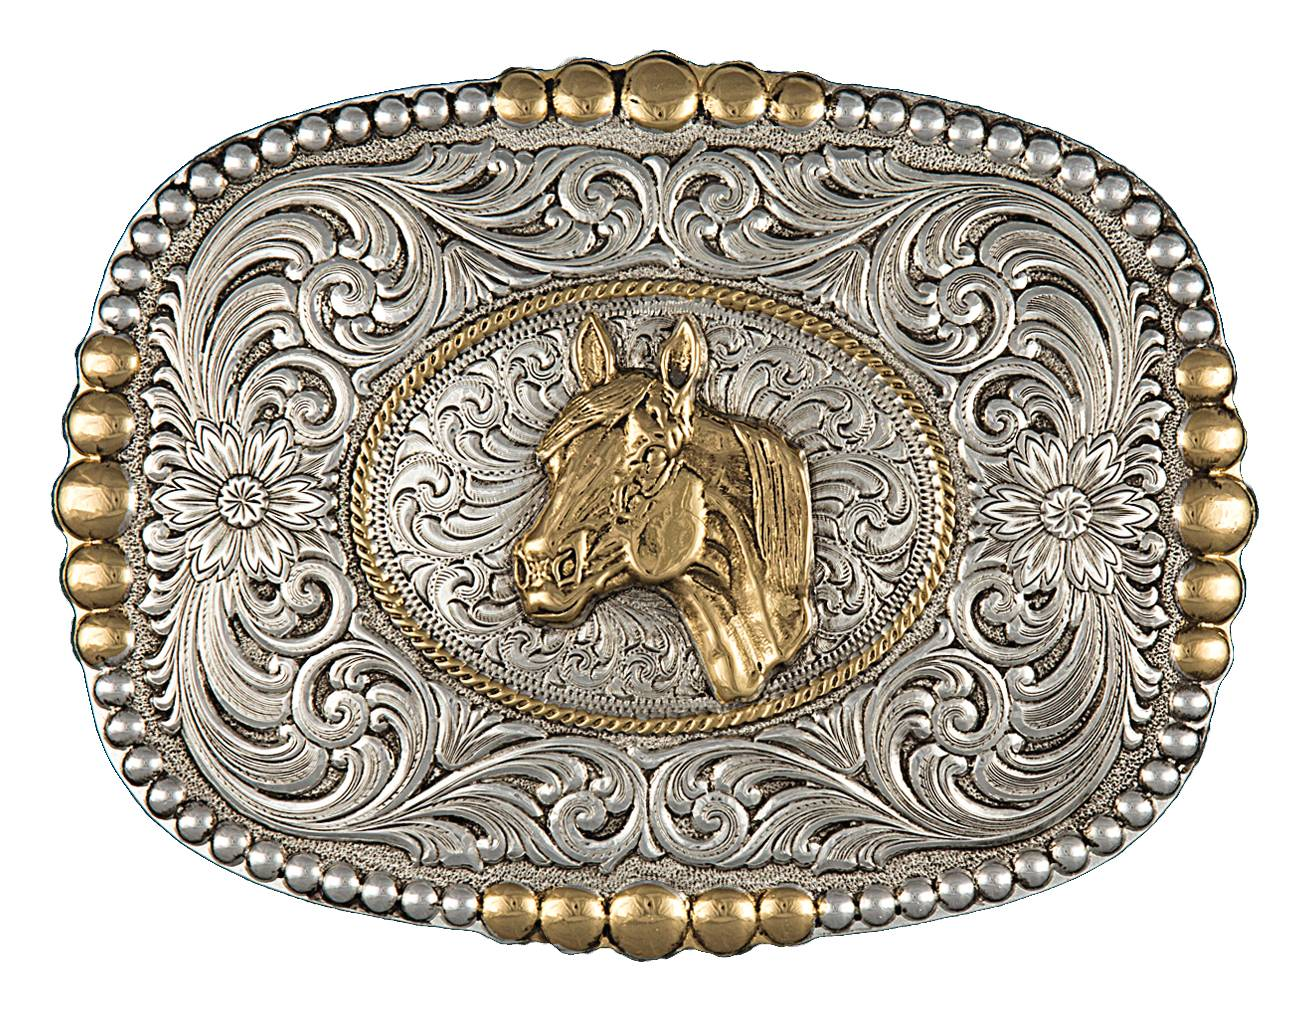 Montana Silversmiths Heirloom Gold Pioneer Portrait Buckle with Horsehead Portrait